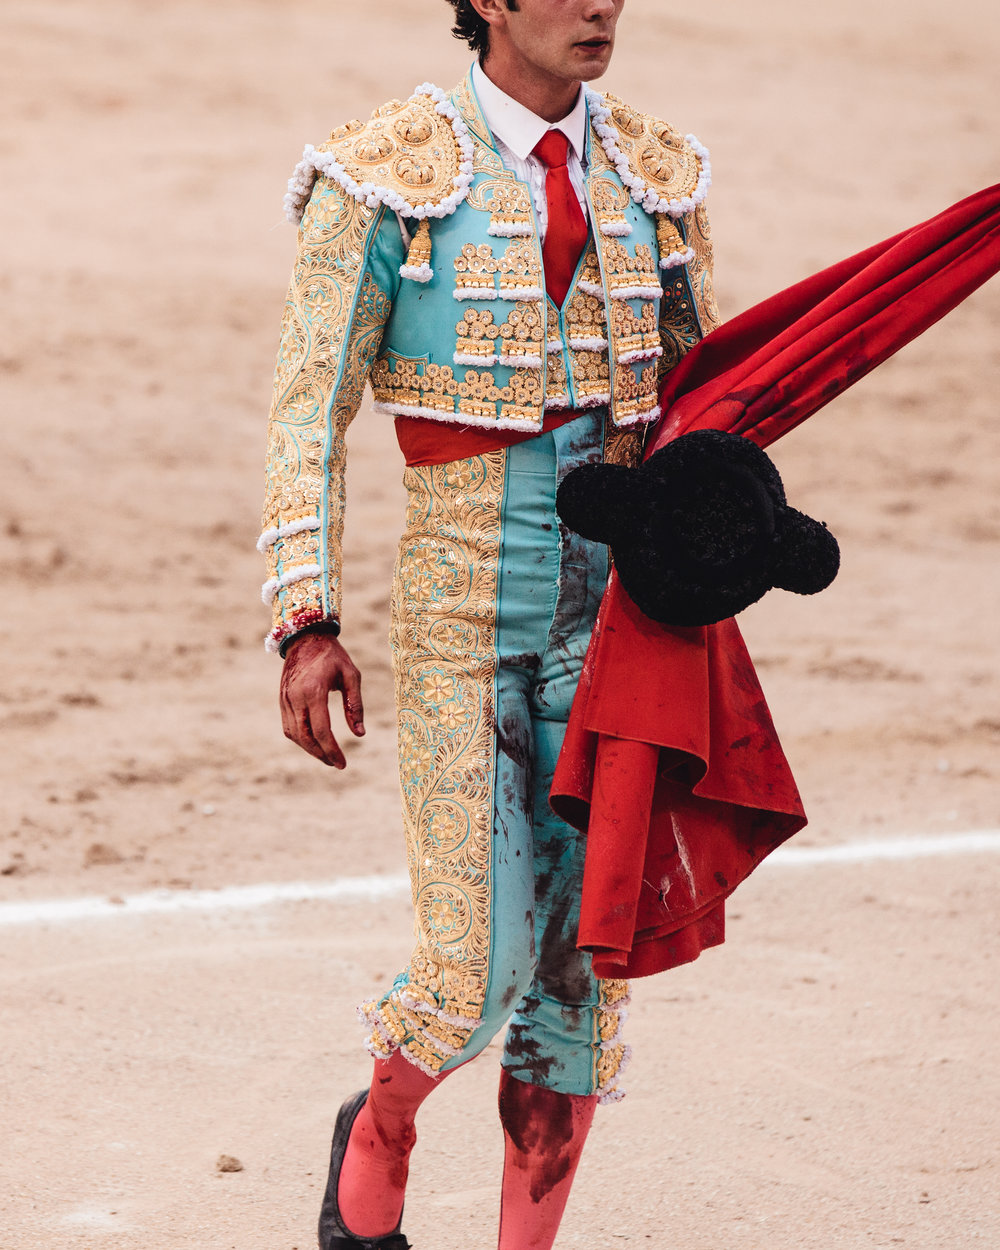 2015_Bullfighting-2.jpg